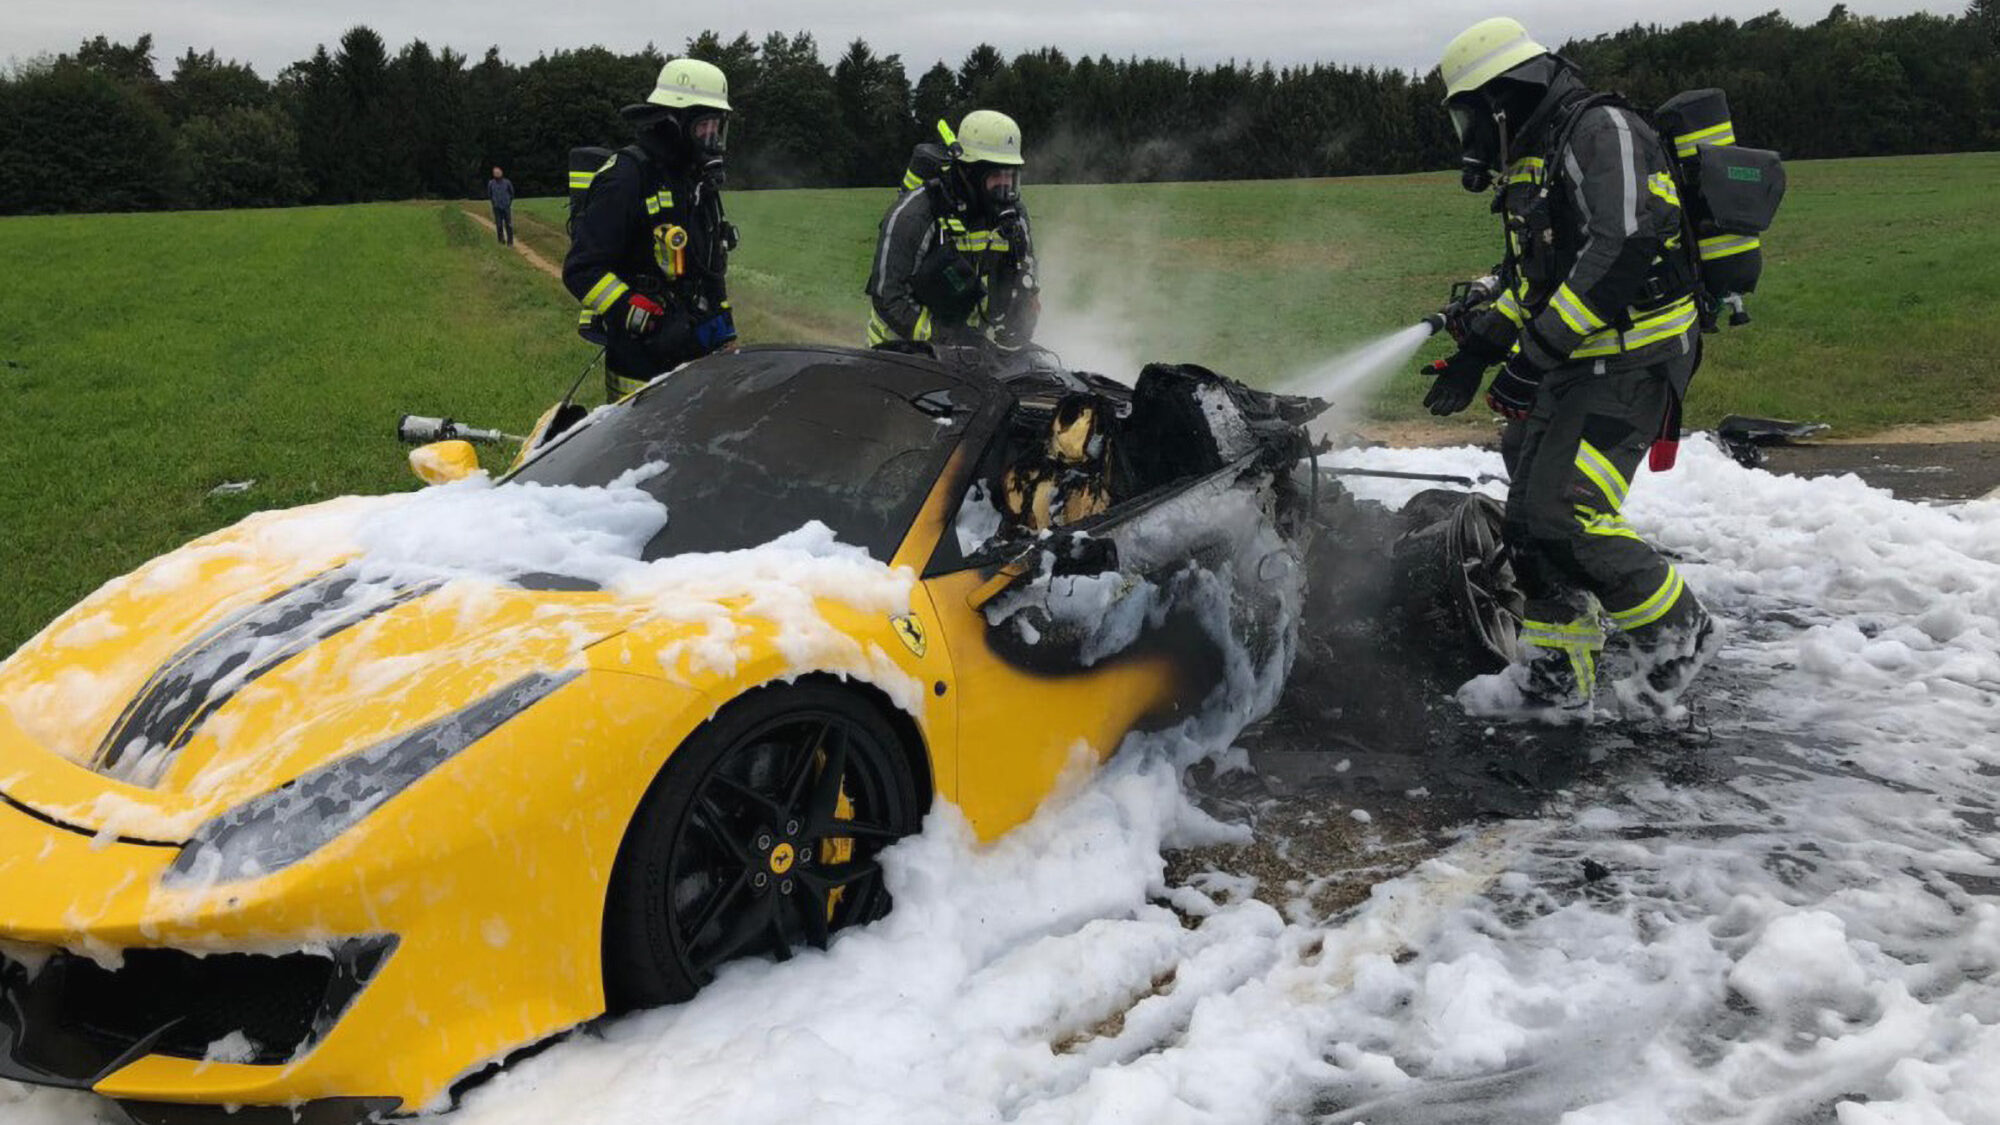 VIDEO: $400K Ferrari Catches on Fire